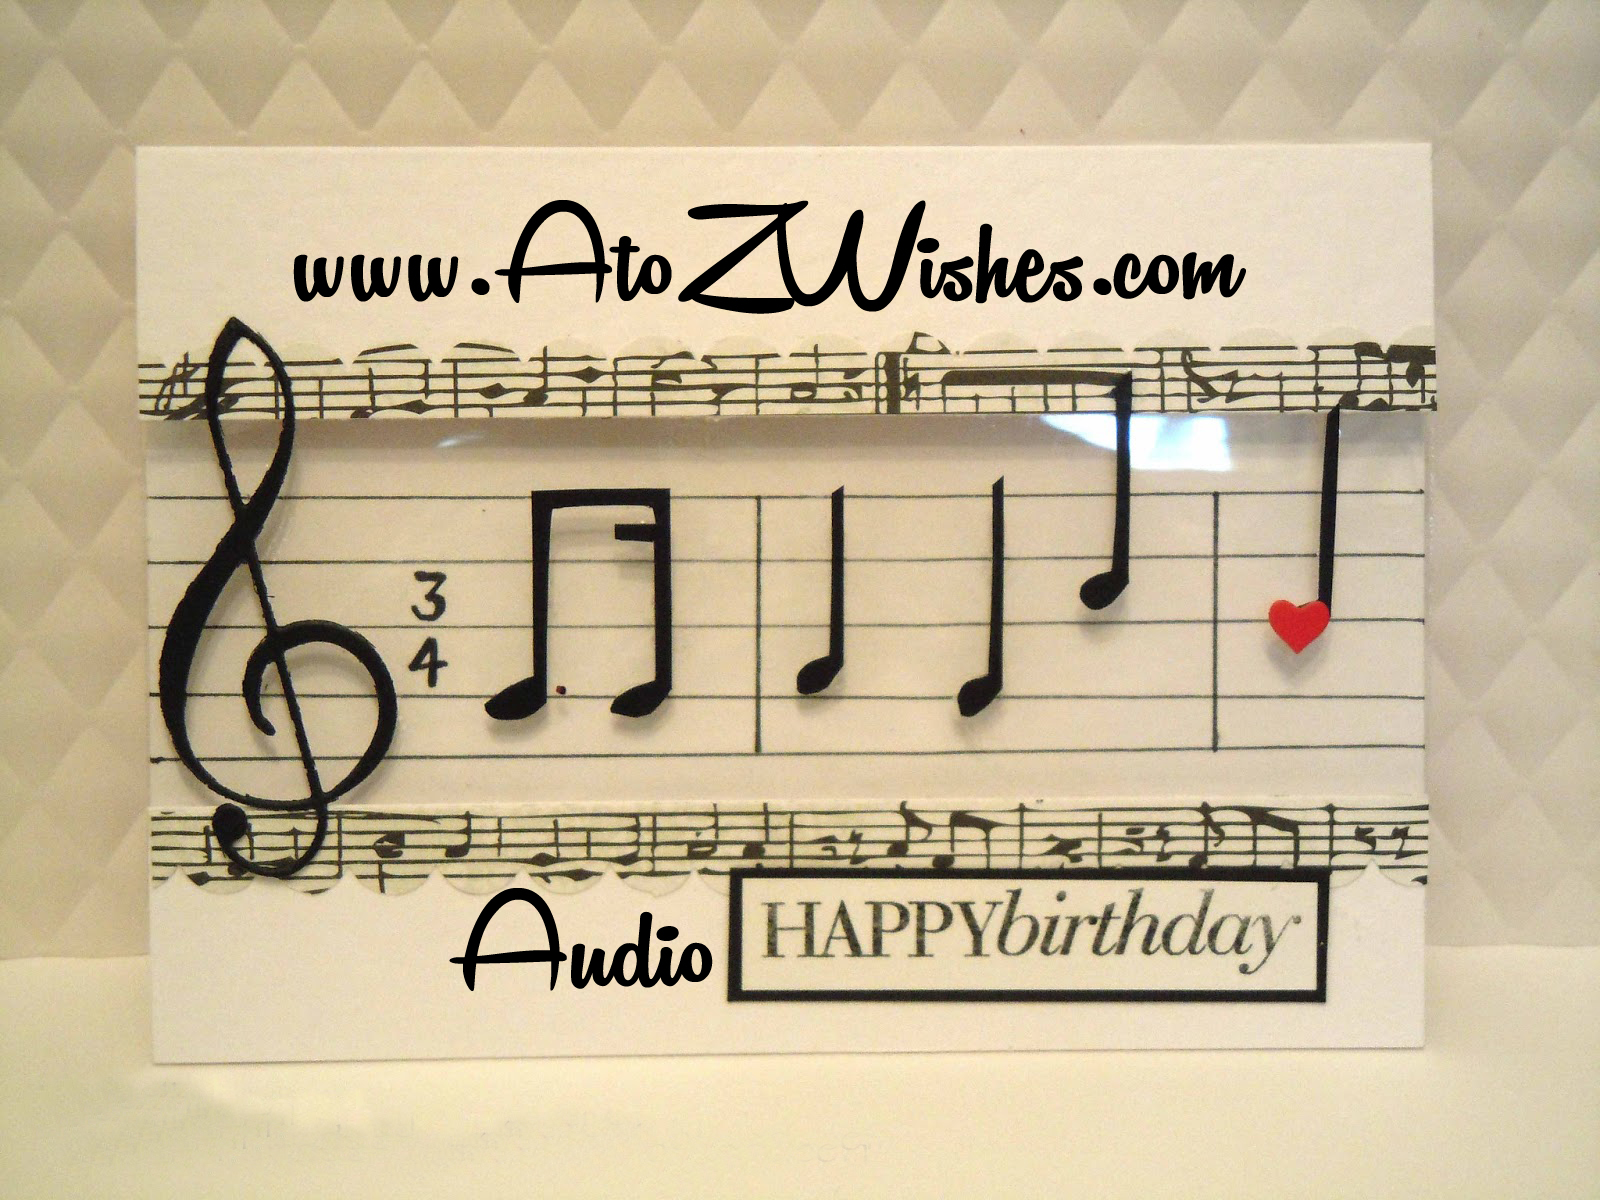 Unique amazing audio greetings happy birthday sai kiran shakewar here is the largest collection of beautiful happy birthday audio greetings you can send these birthday wishes to anyone via sms whatsapp facebook kristyandbryce Images